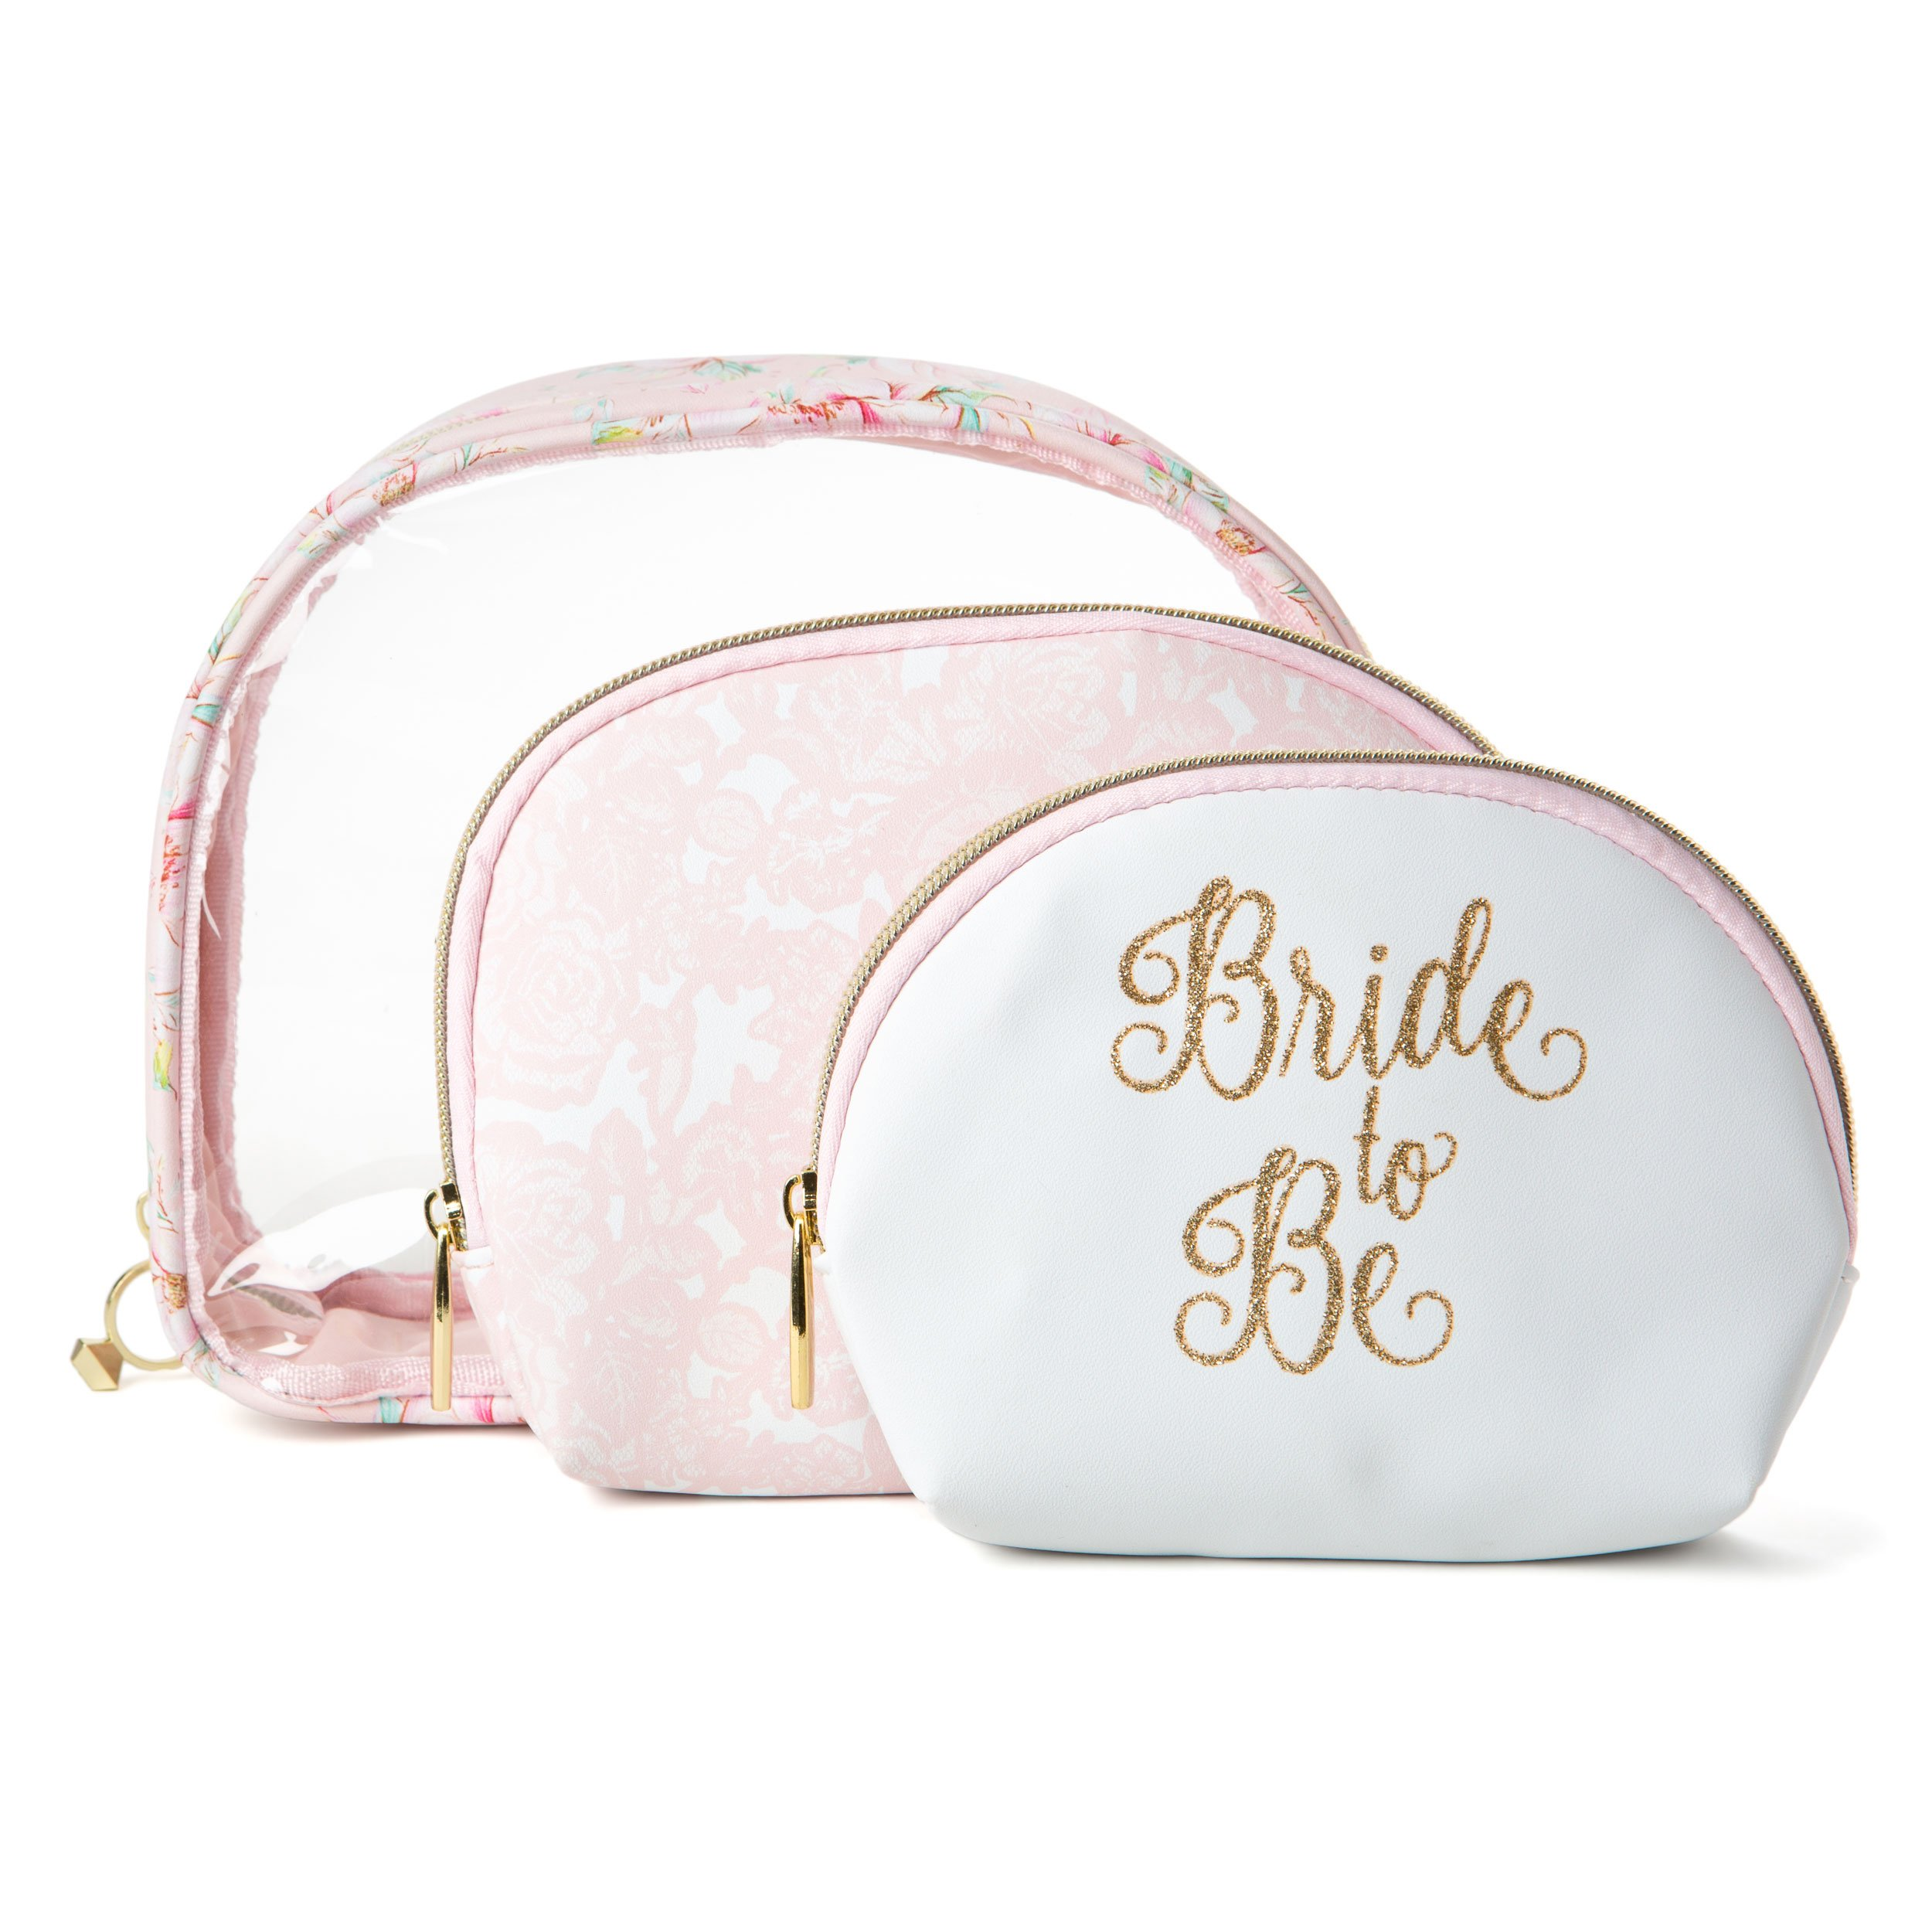 Tri-Coastal Design Bride to Be Cosmetic Makeup Bags: Compact Travel Toiletry Bag Set in Small, Medium and Large for Women and Girls